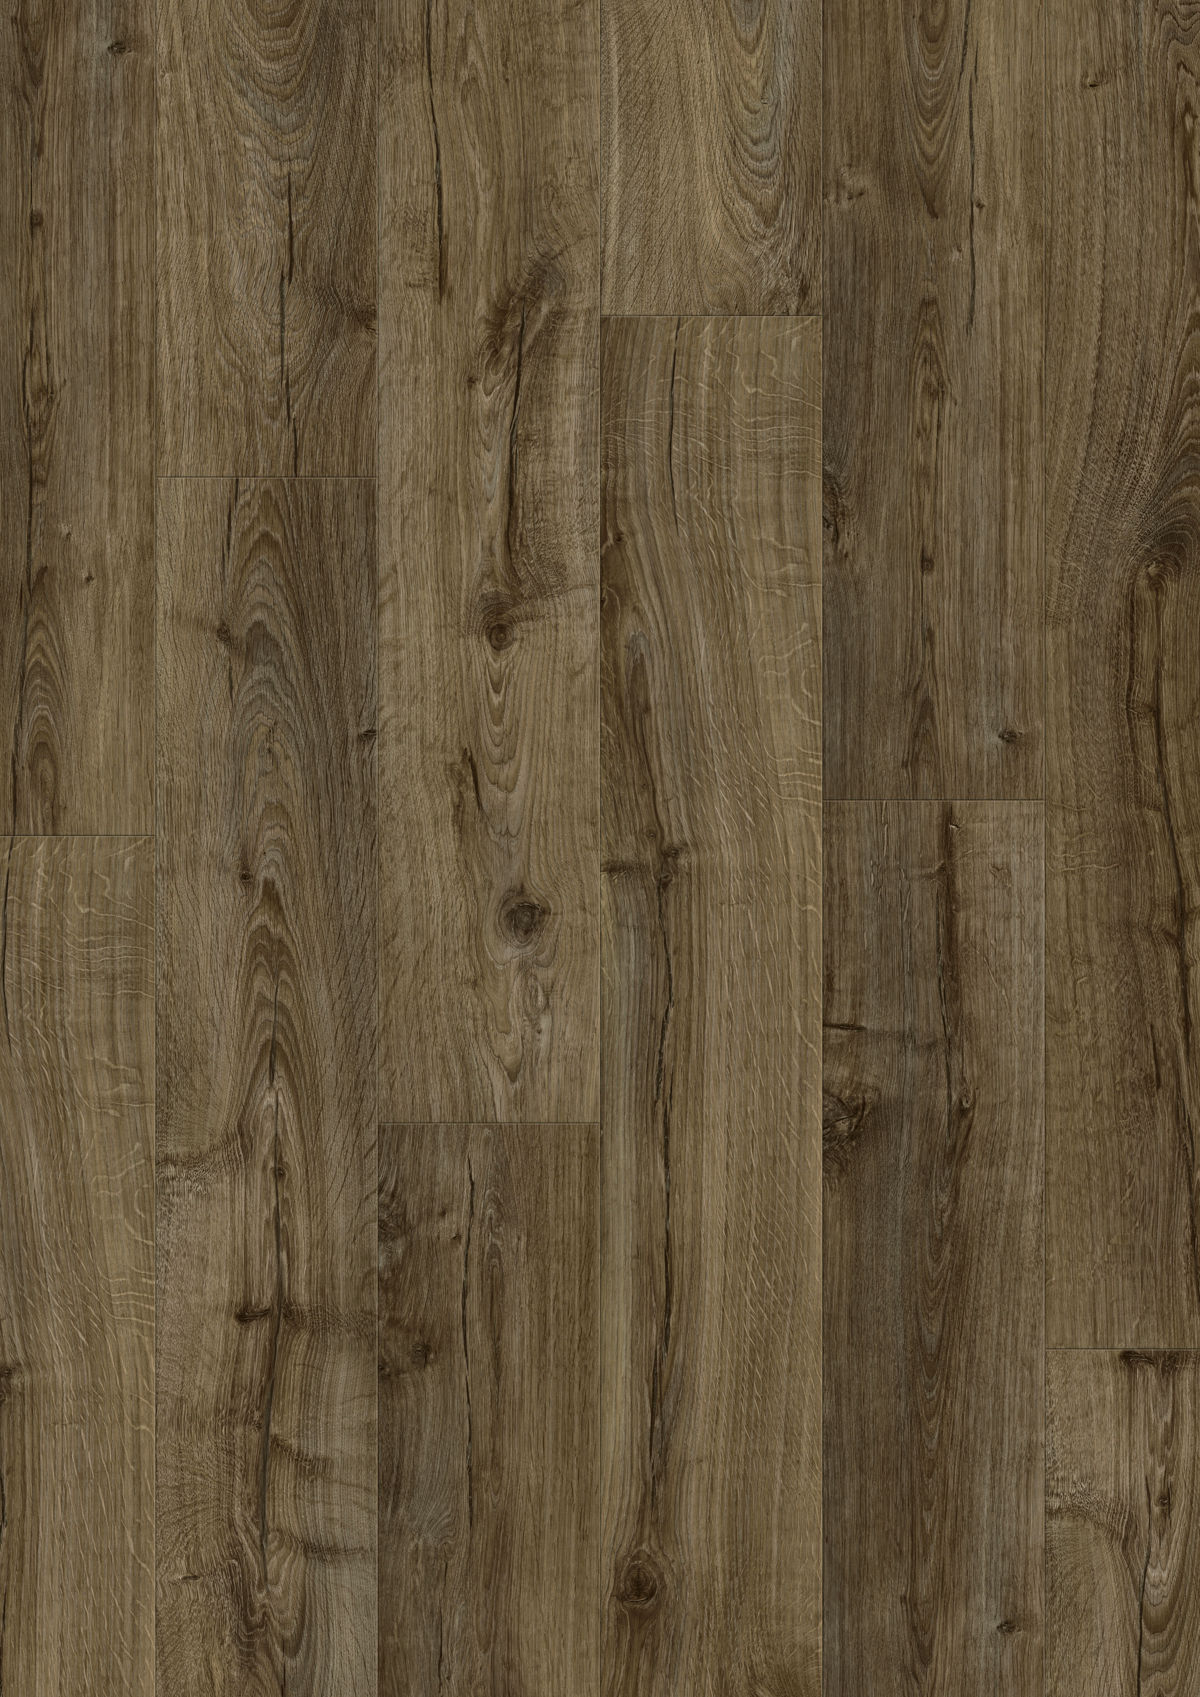 Pergo sensation farmhouse oak laminate flooring for Pergo flooring